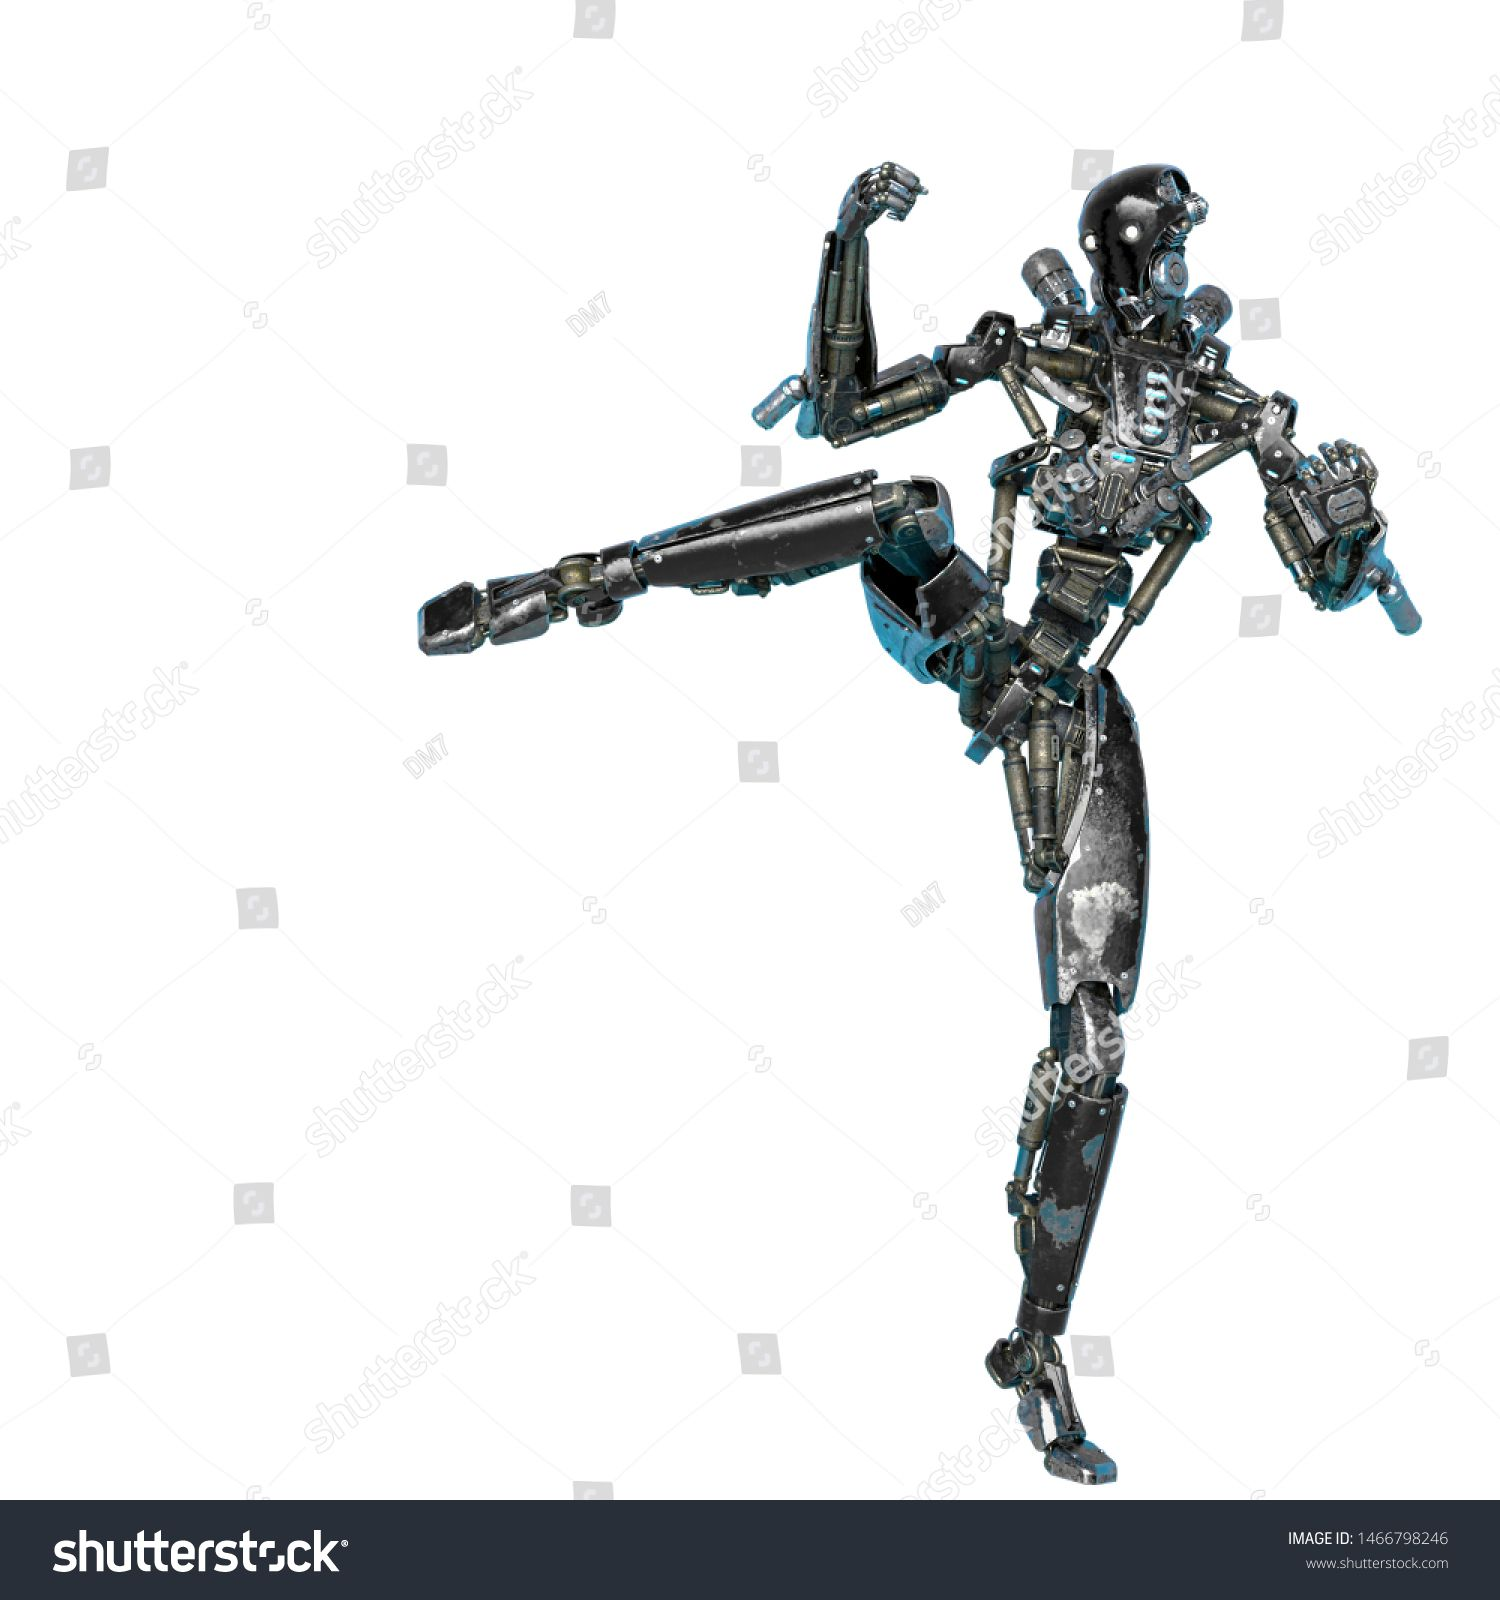 ninja robot brutal kick in a white background This cyber soldier in clipping path is very useful for graphic design creations 3d illustration